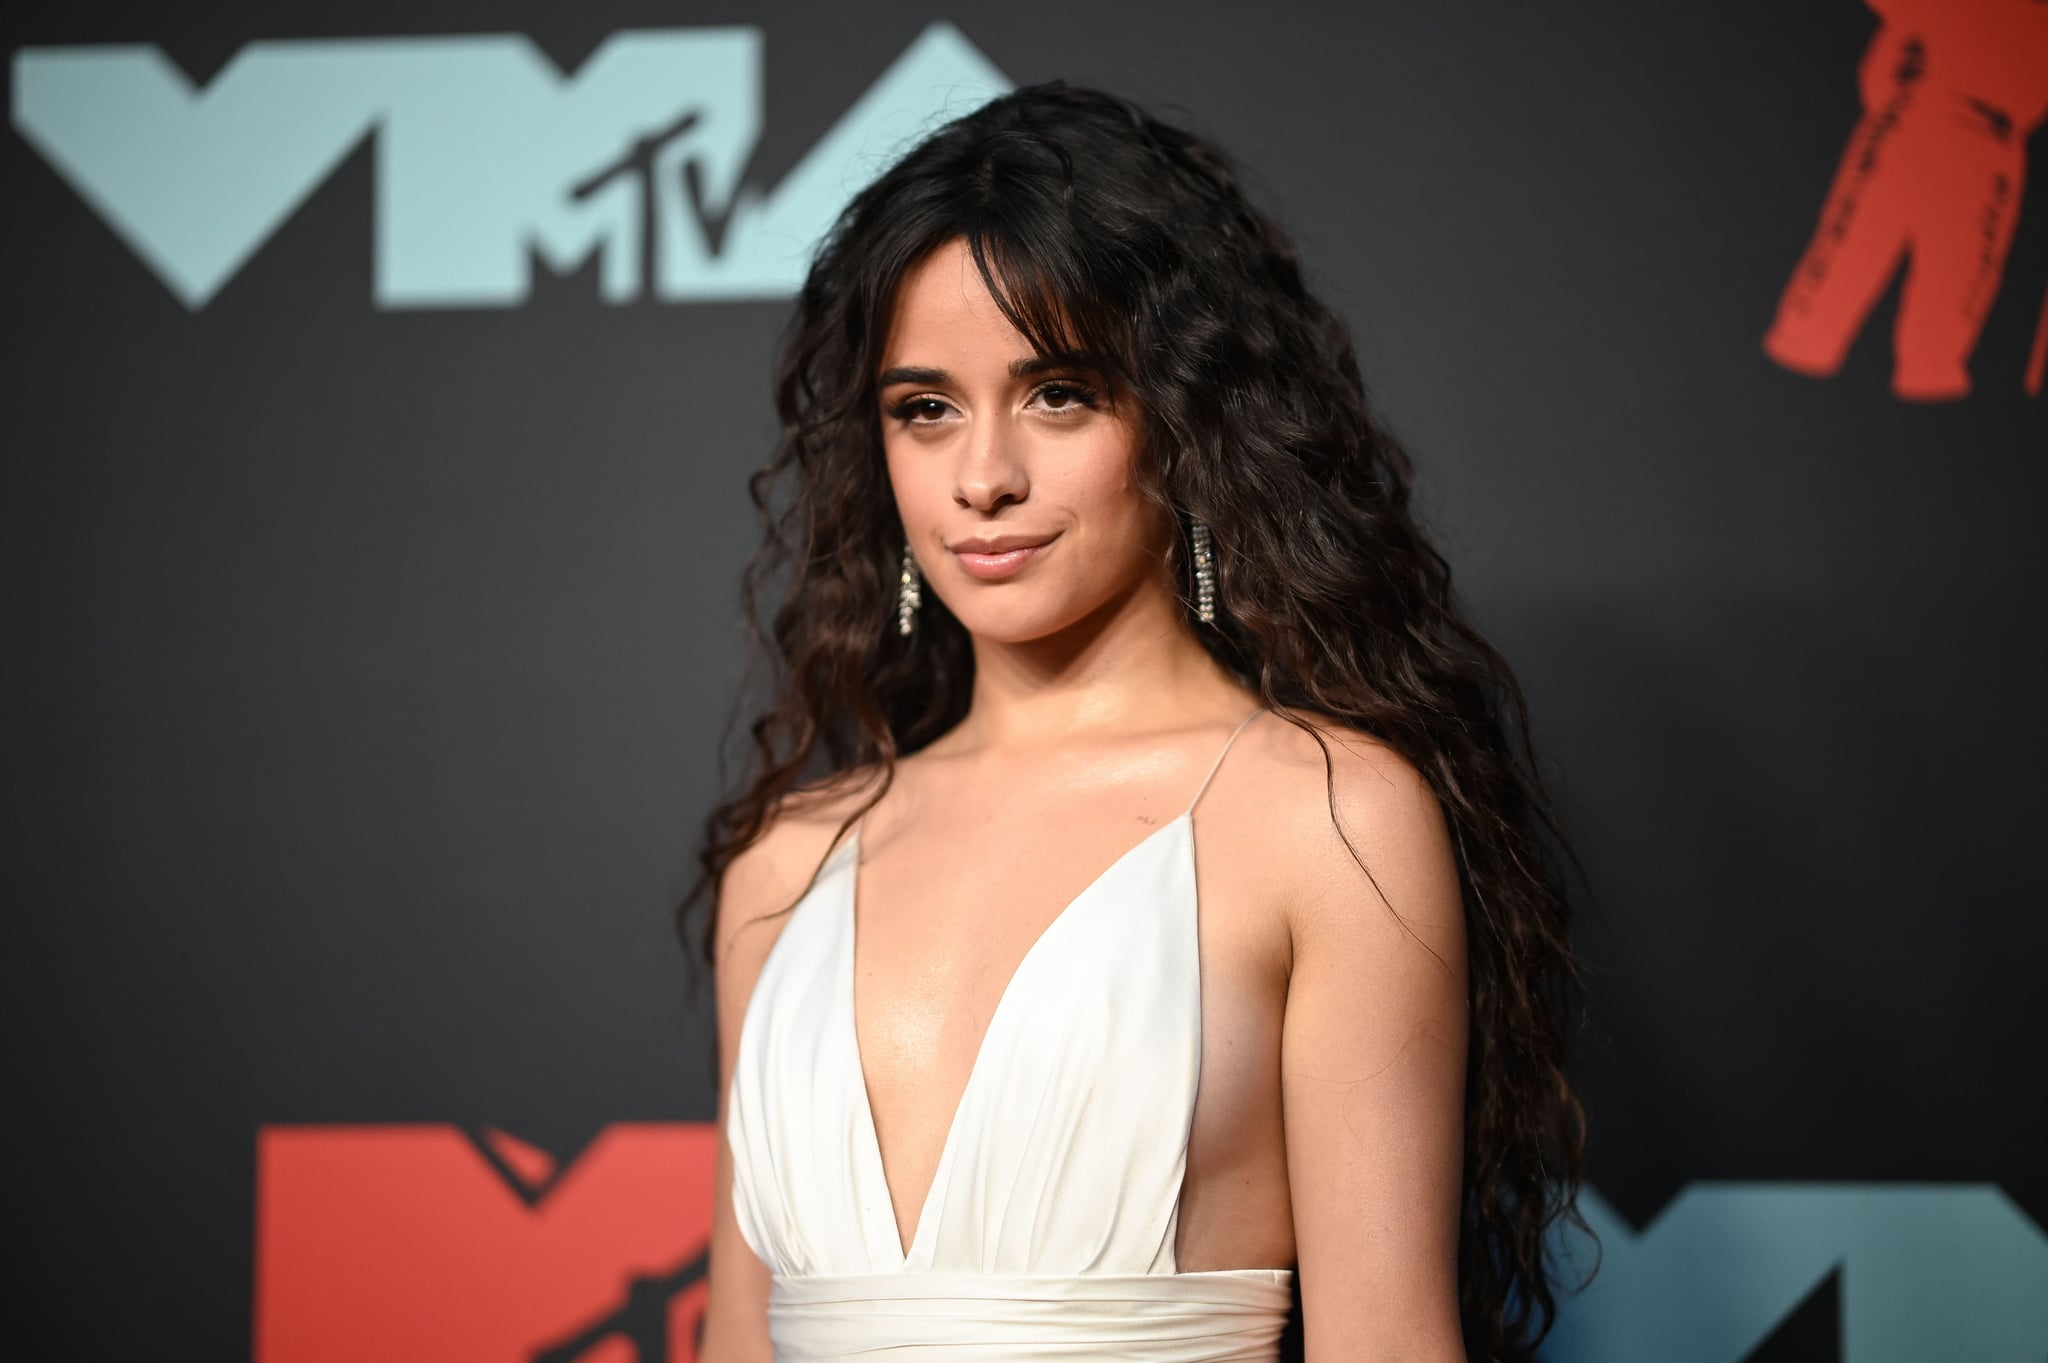 US-Cuban singer-songwriter Camila Cabello arrives for the 2019 MTV Video Music Awards at the Prudential Center in Newark, New Jersey on August 26, 2019. (Photo by Johannes EISELE / AFP)        (Photo credit should read JOHANNES EISELE/AFP via Getty Images)